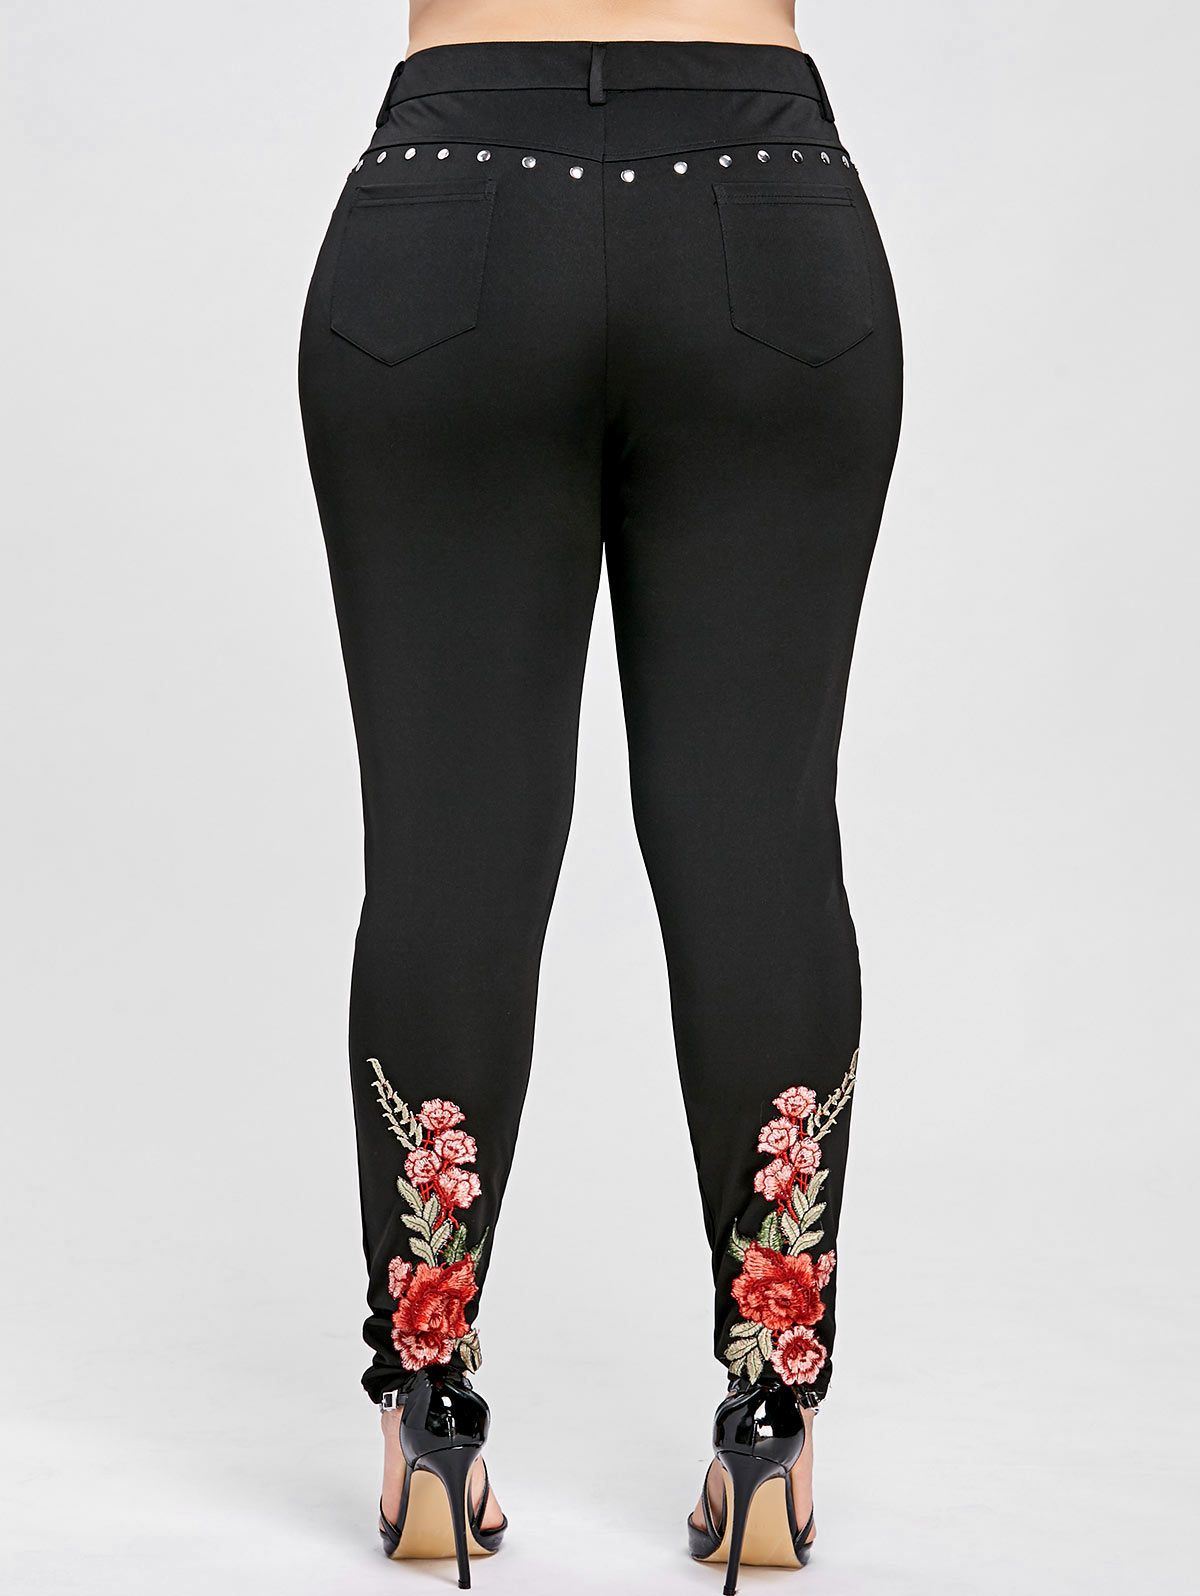 aa1b39e6c51 Detail Feedback Questions about Kenancy Women Plus Size Floral Embroidery  Rivet Pencil Pants Fashion Lady Pants Trousers High Elastic Pants Casual  Skinny ...